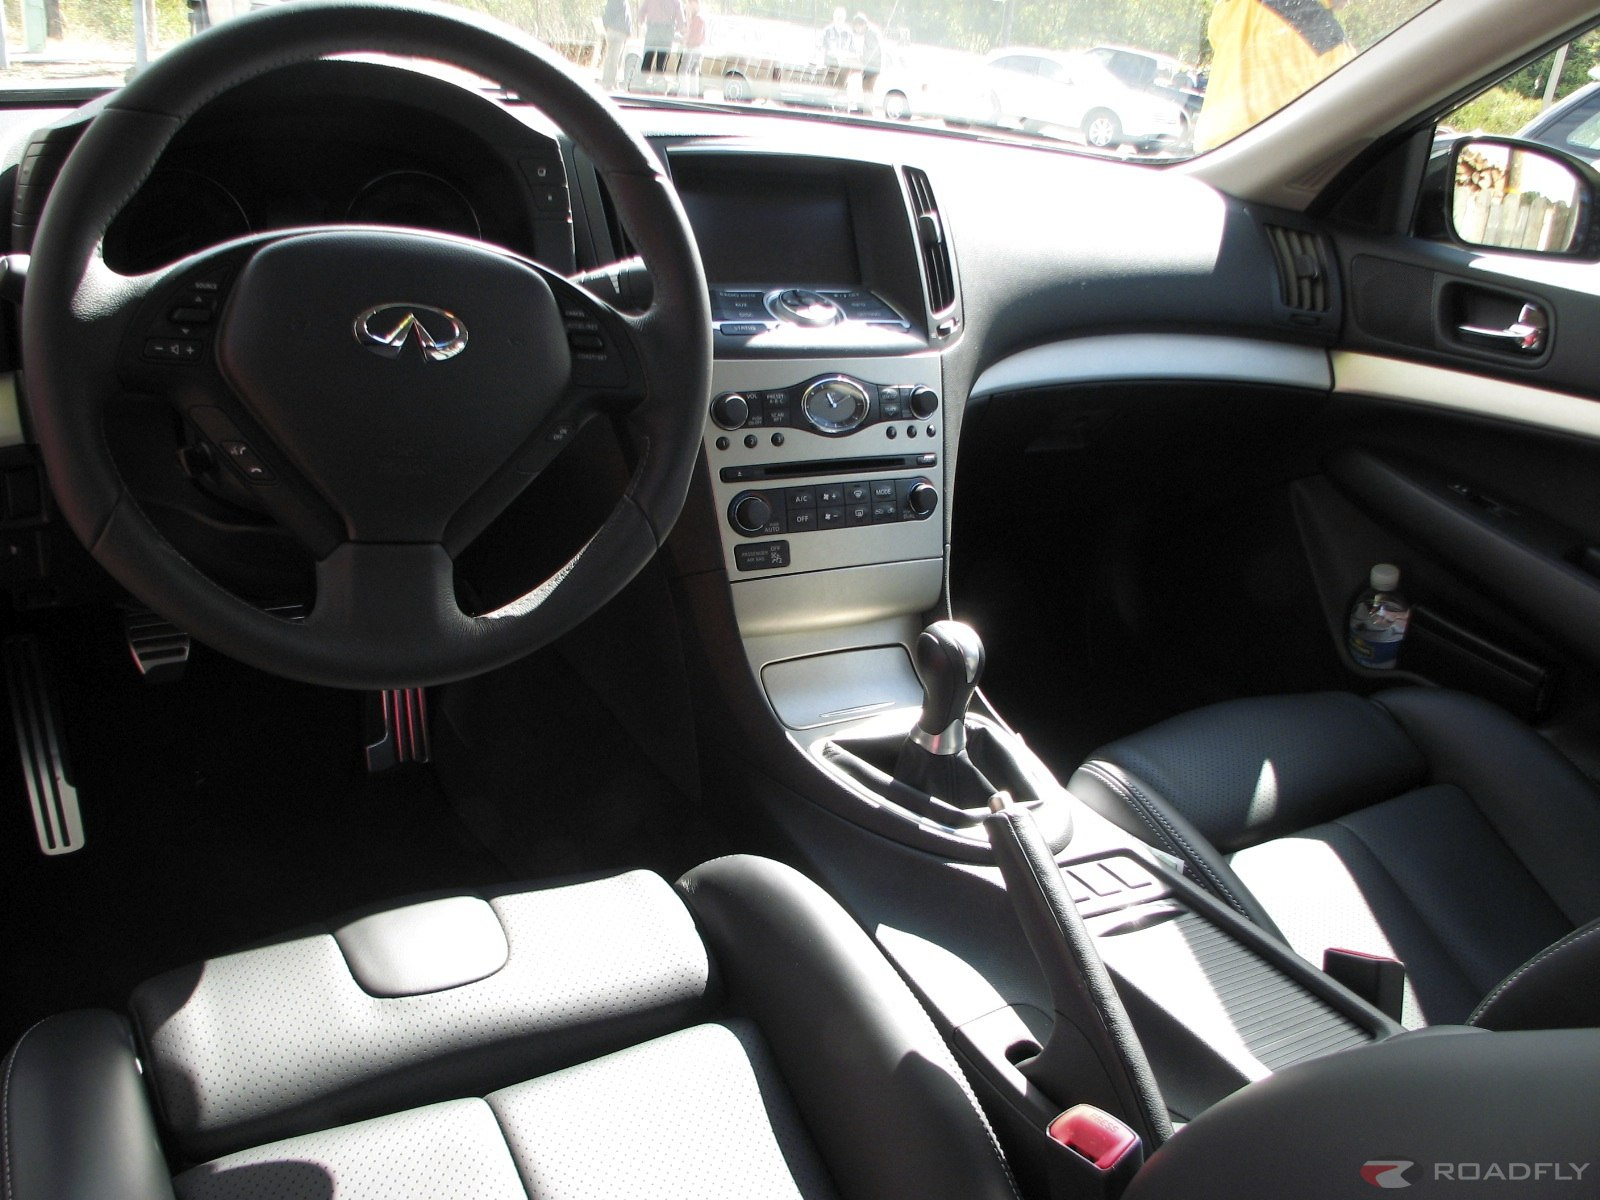 100 reviews 2006 g35 coupe interior on margojoyo 2007 infiniti g35 information and photos zombiedrive vanachro Gallery